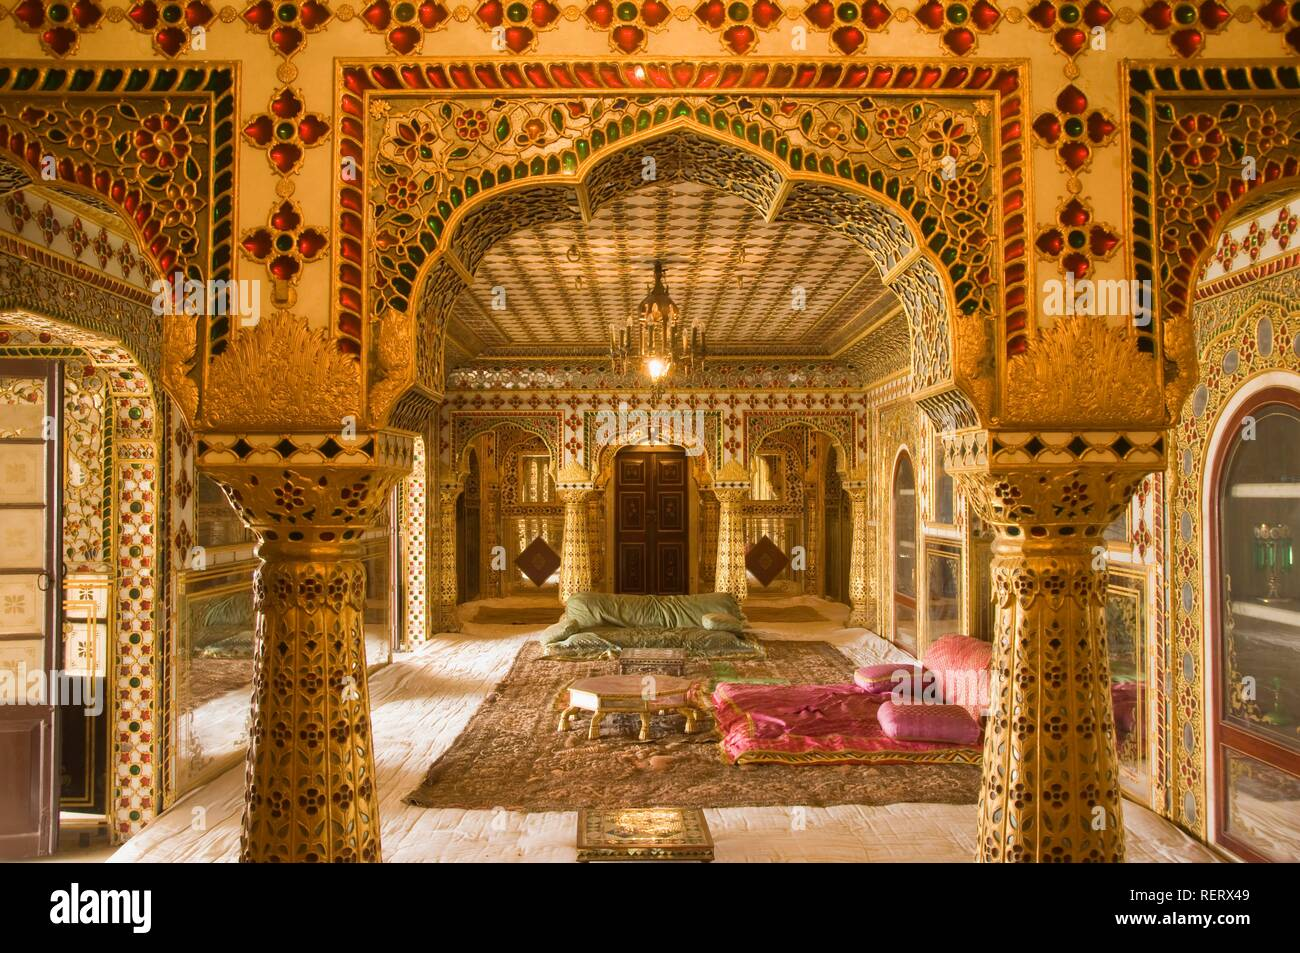 Jaipur, City Palace, Museum of Sawai Man Singh II inside the Chandra Mahal, Rajasthan, India, South Asia - Stock Image